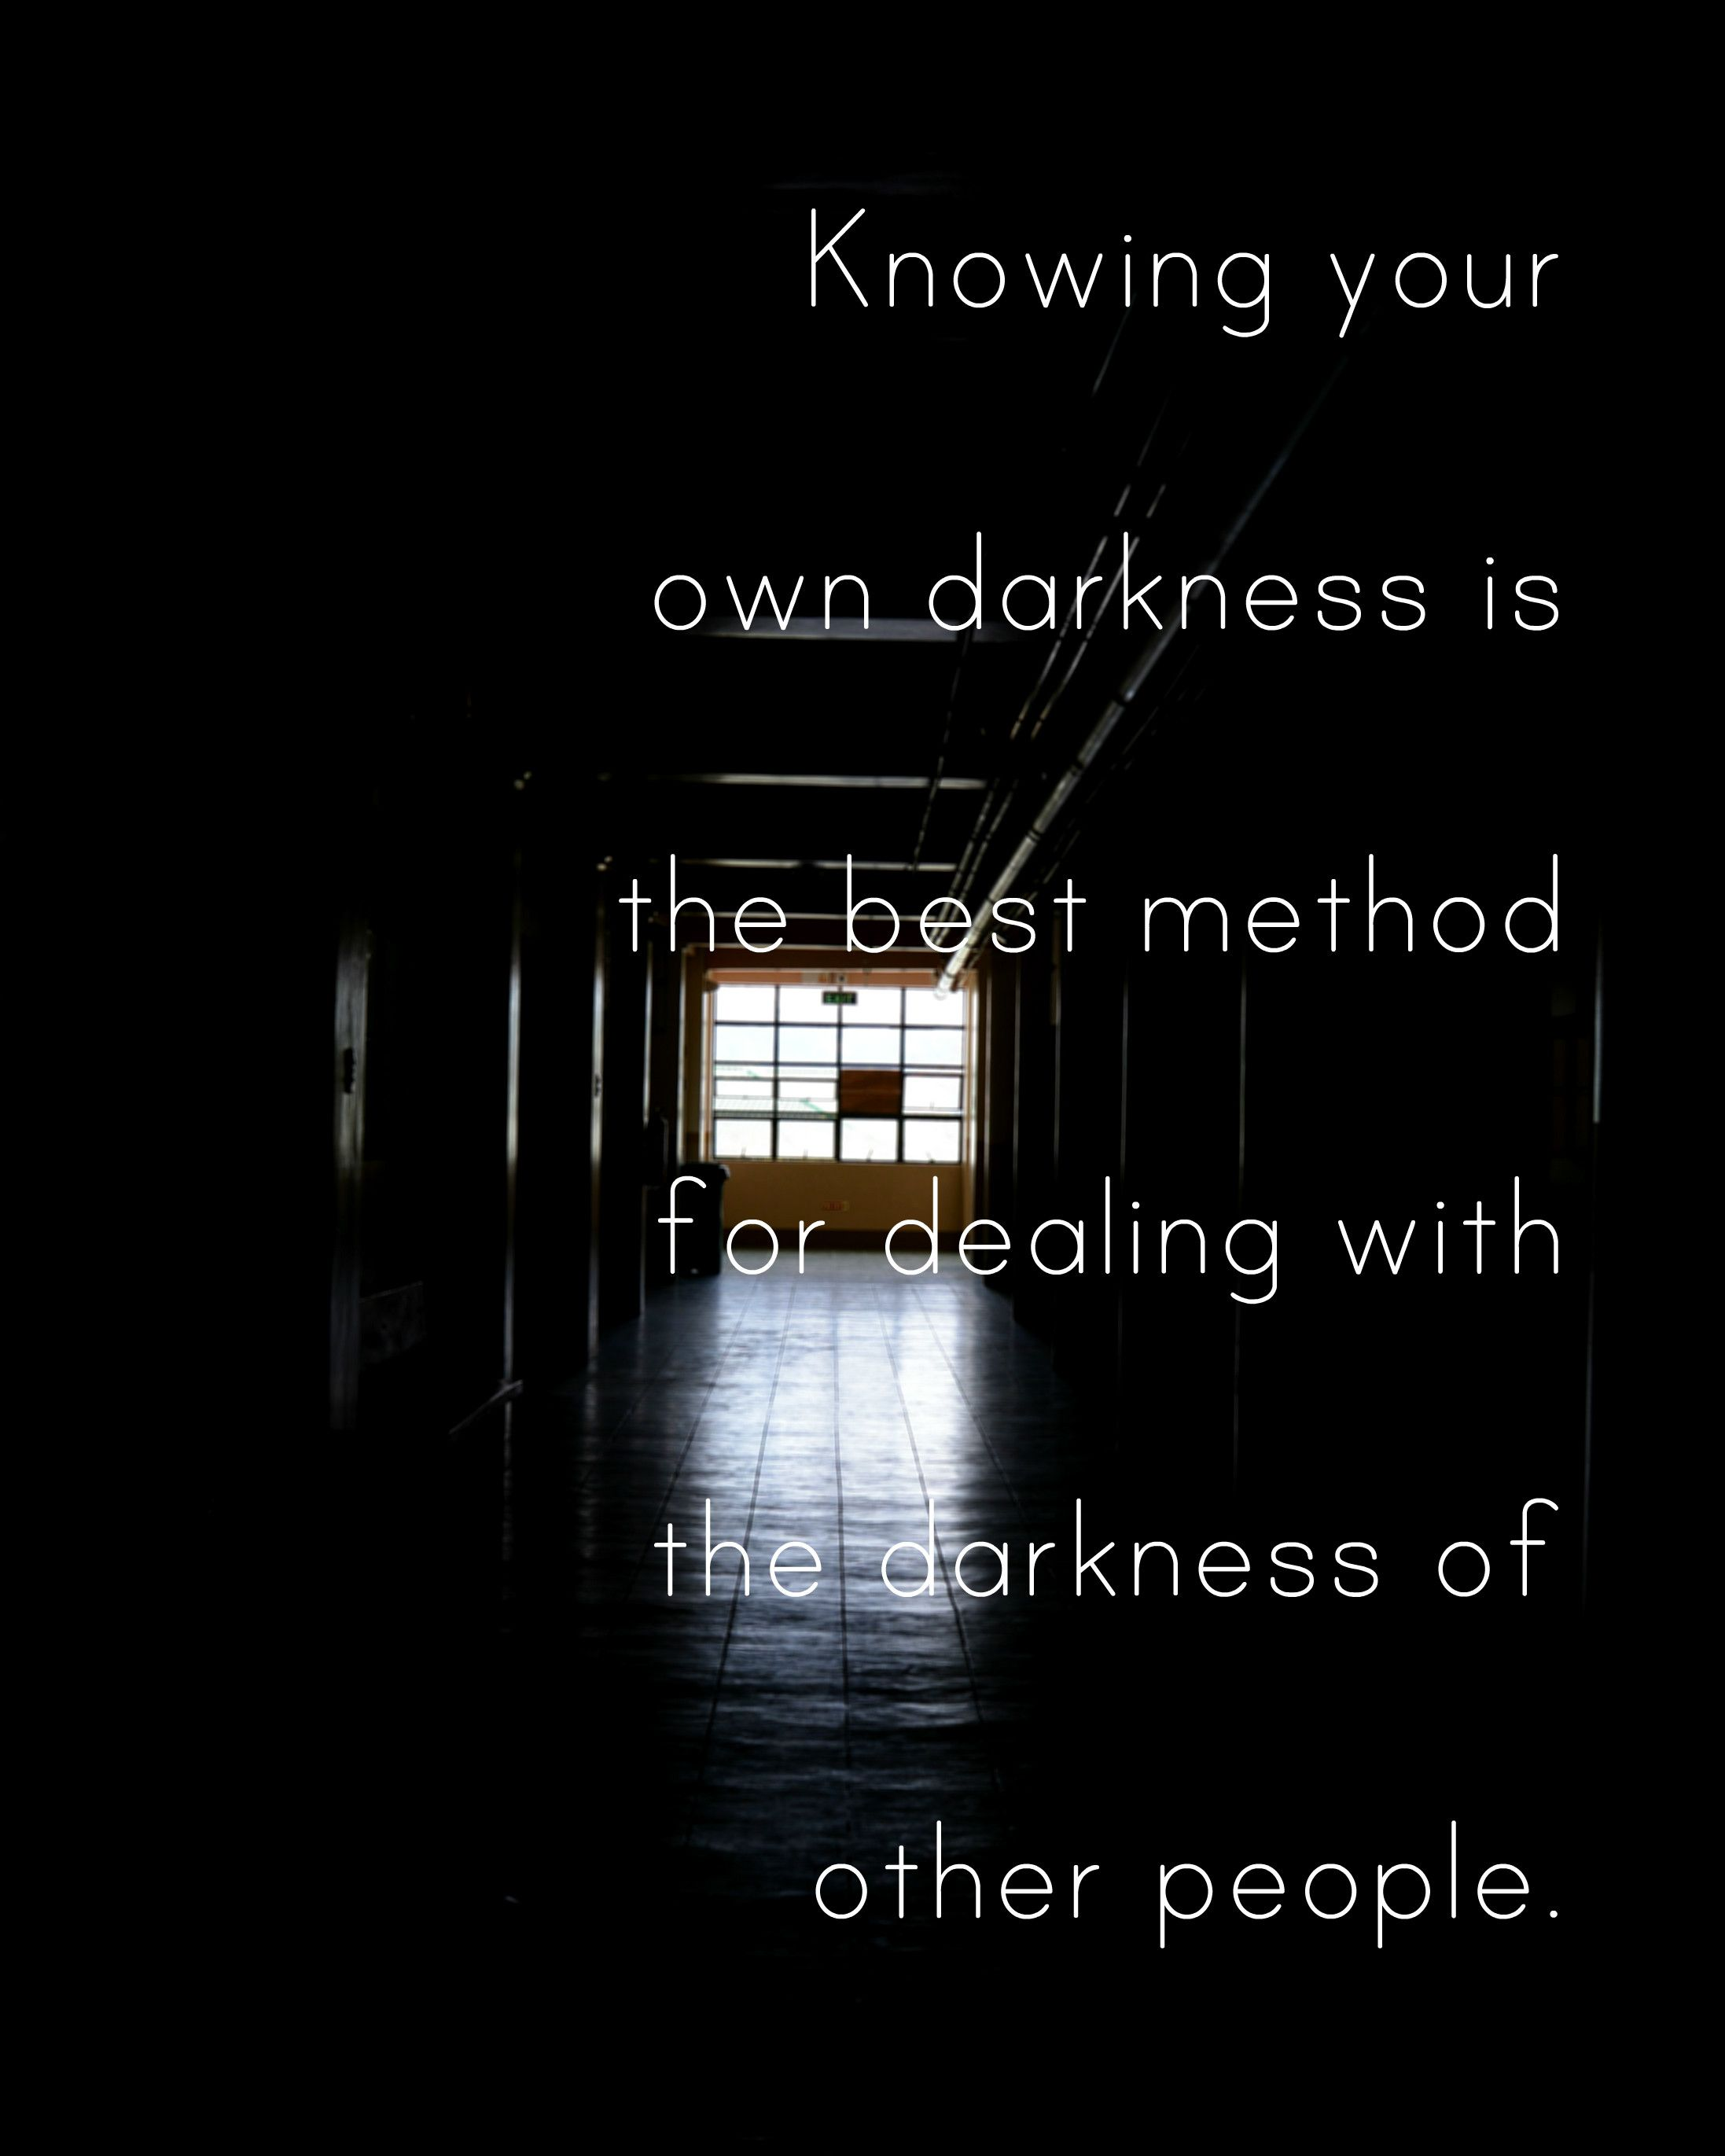 Quote: Internet #quotes #darkness #hallway #edit #photography #darkness#quotes #people